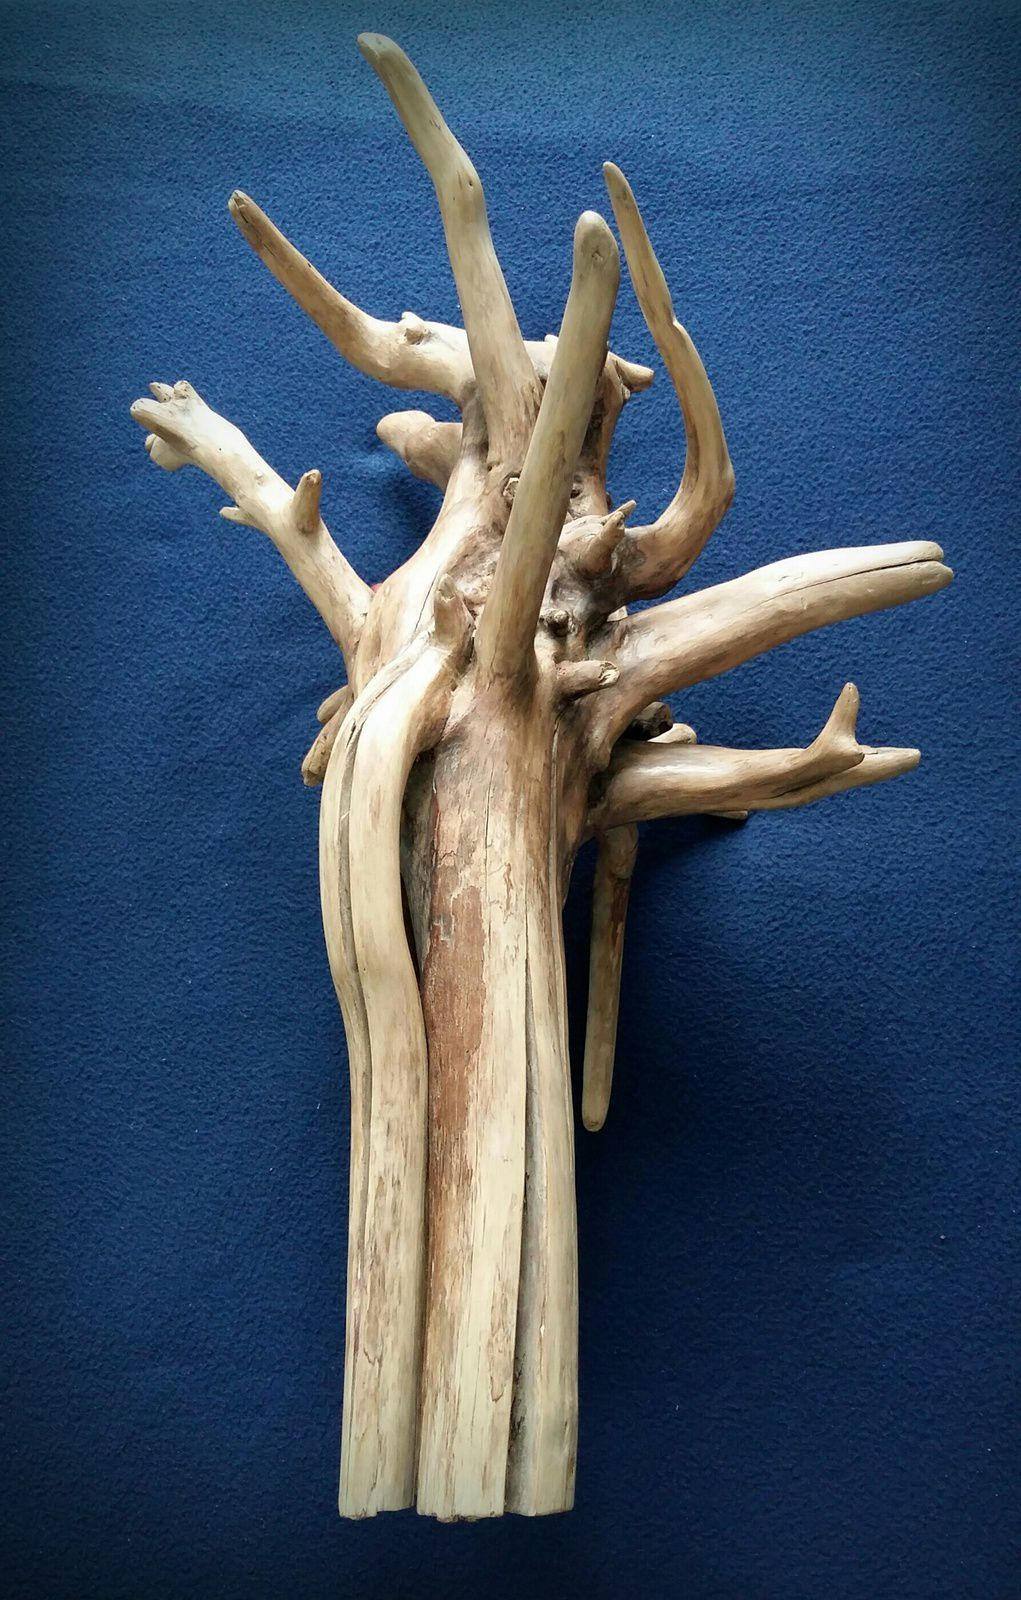 Work in progress (Driftwood)